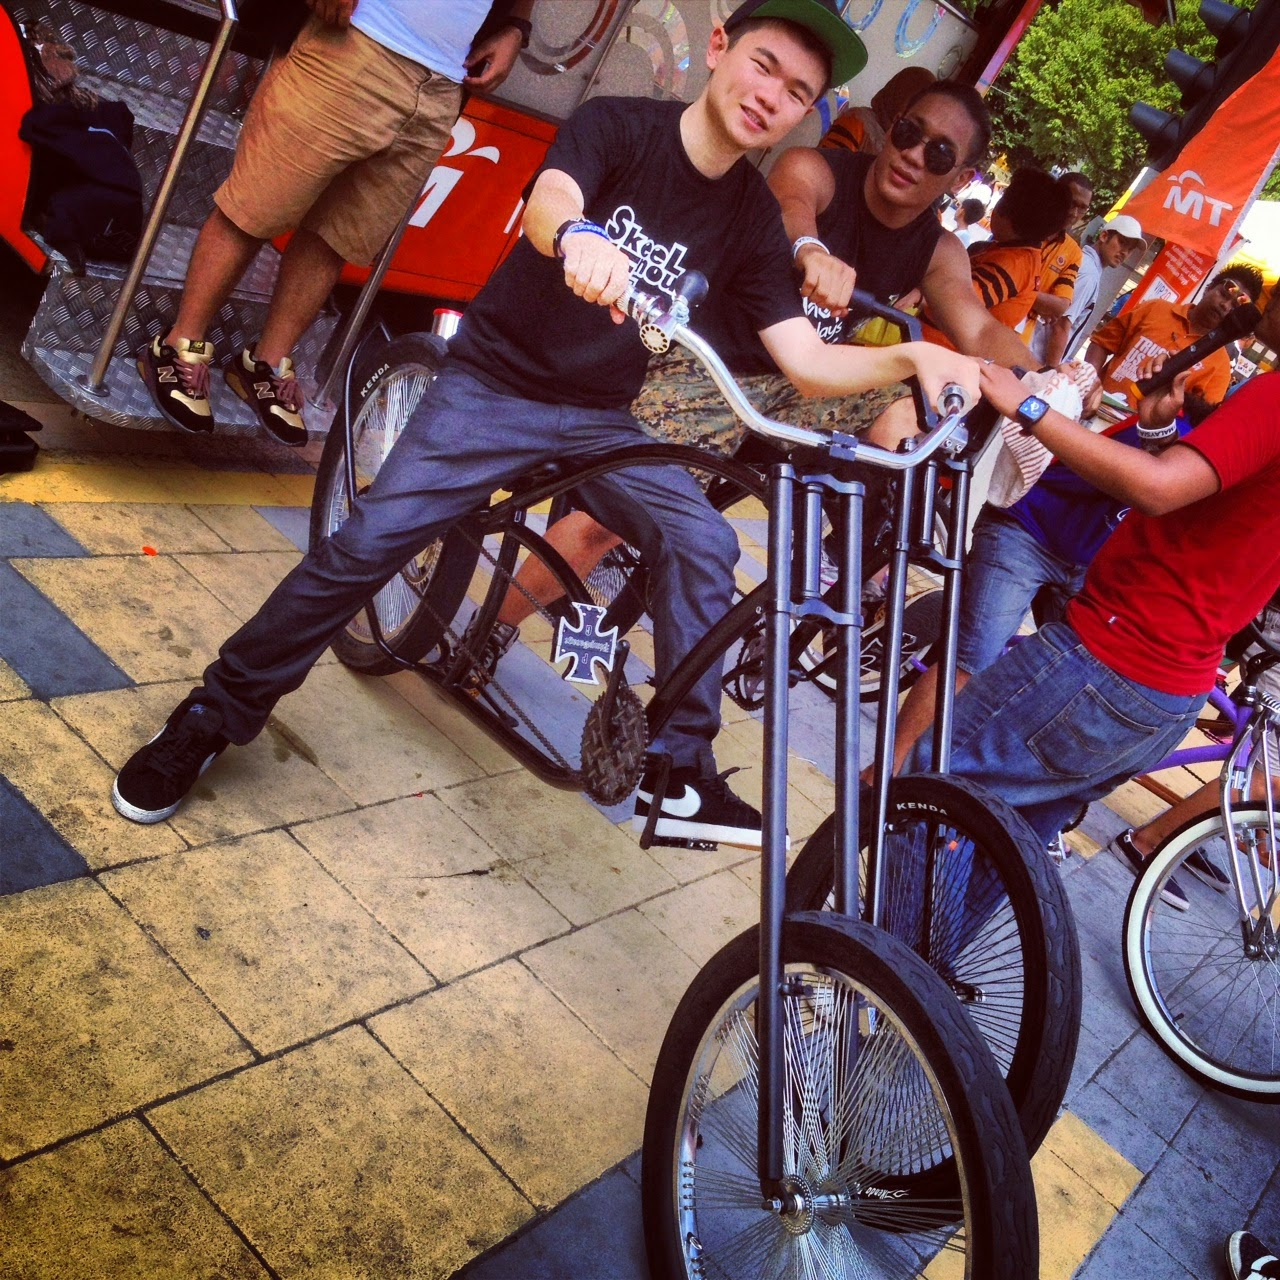 HANGING OUT WITH BIKE QUEST CHOPPER BICYCLE PUTRAJAYA FESTIVAL BELIA